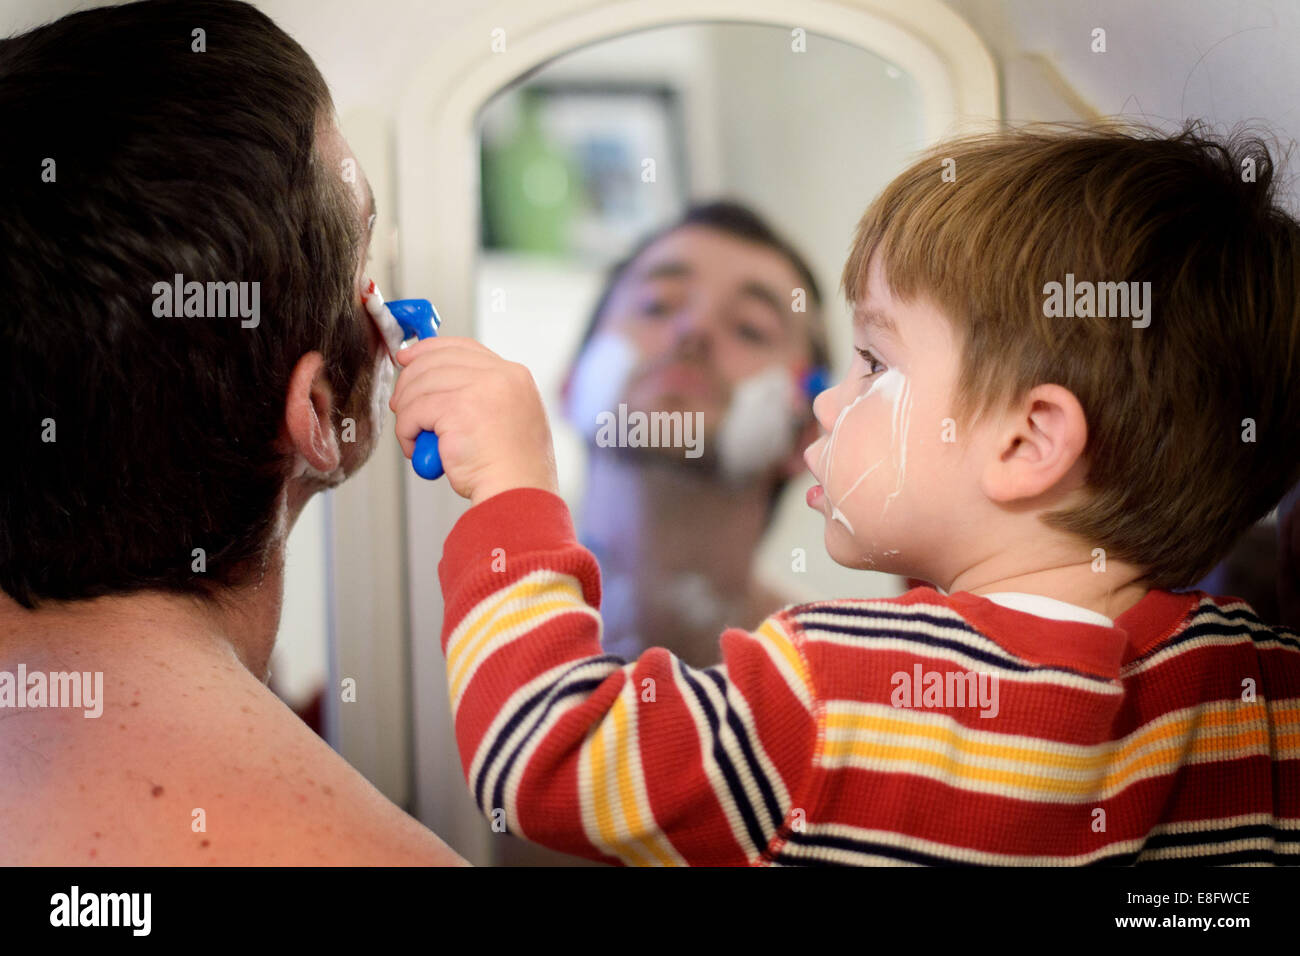 Father and son shaving (2-3 years) - Stock Image